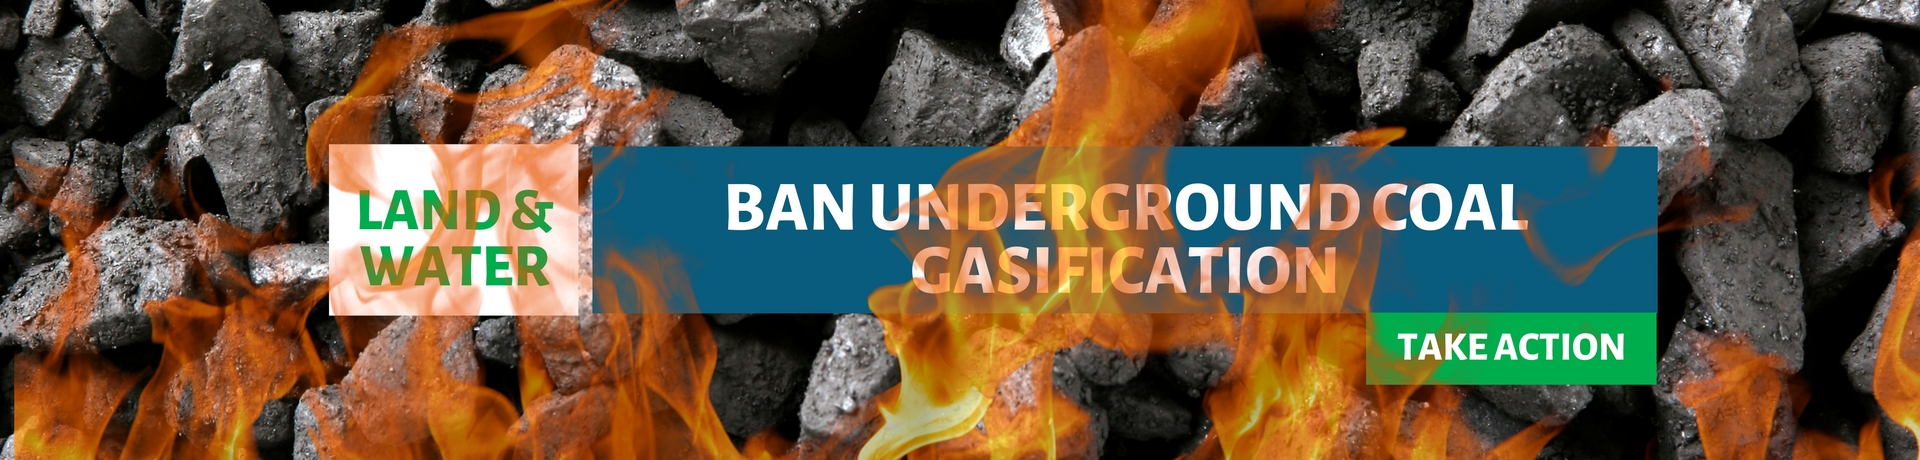 Ban_Underground_Coal_Gasification_-_Slider.jpg